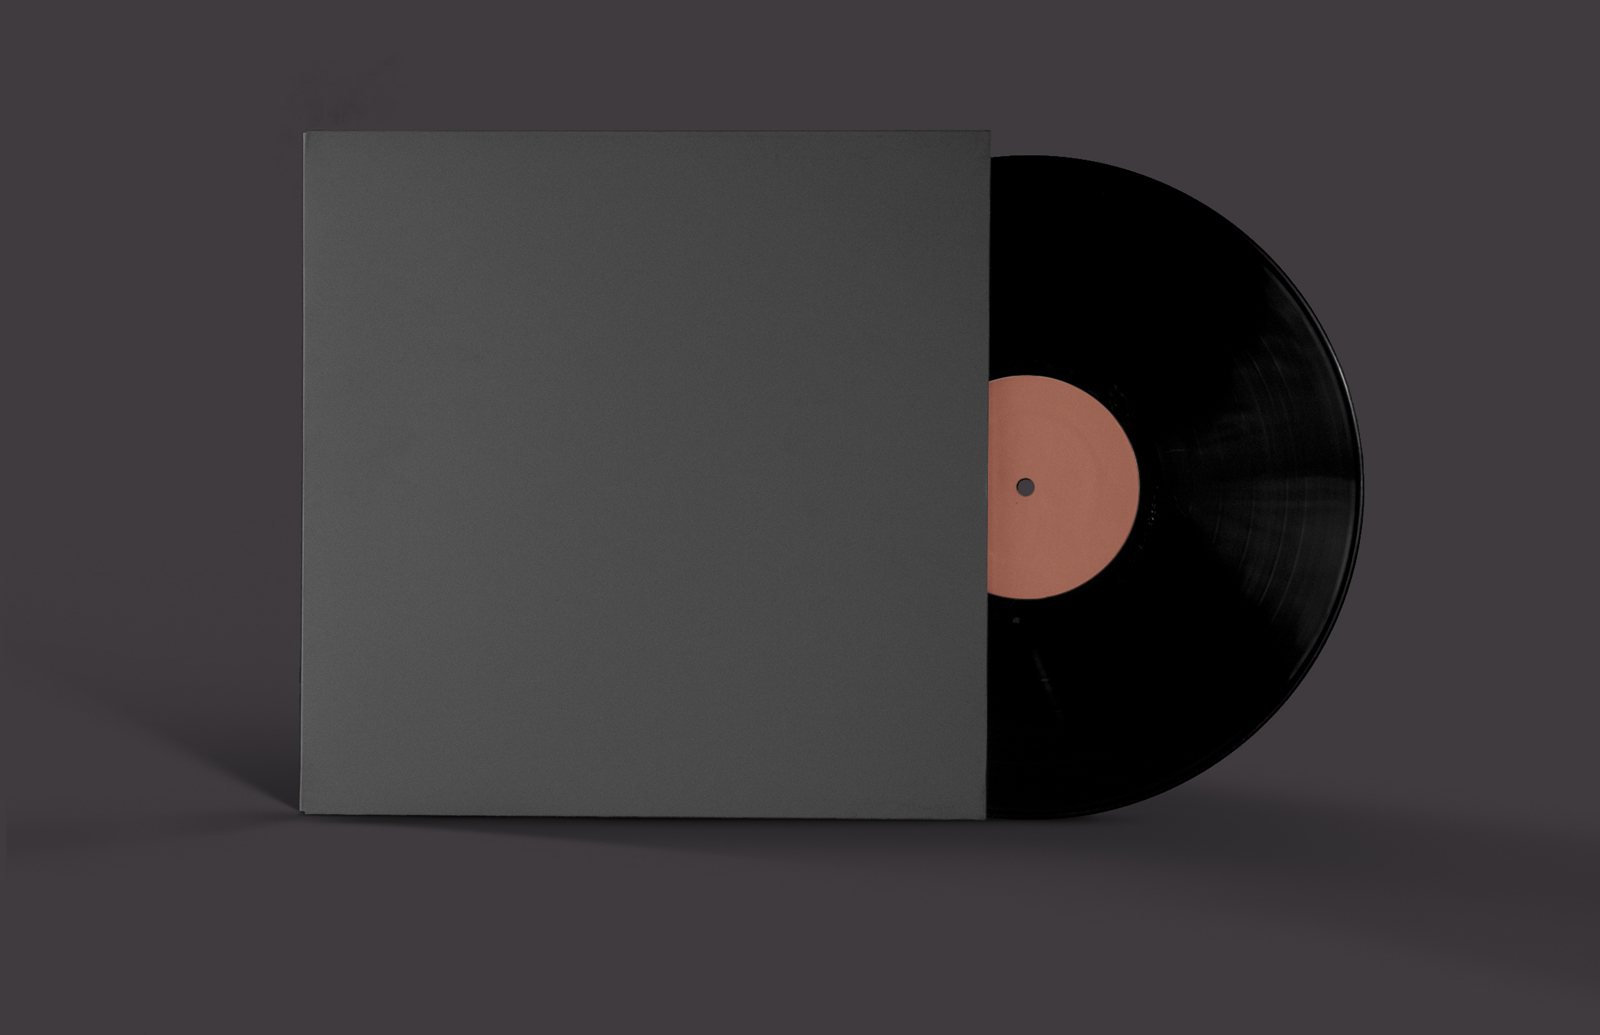 Vinyl Record Cover The vinyl record mockup